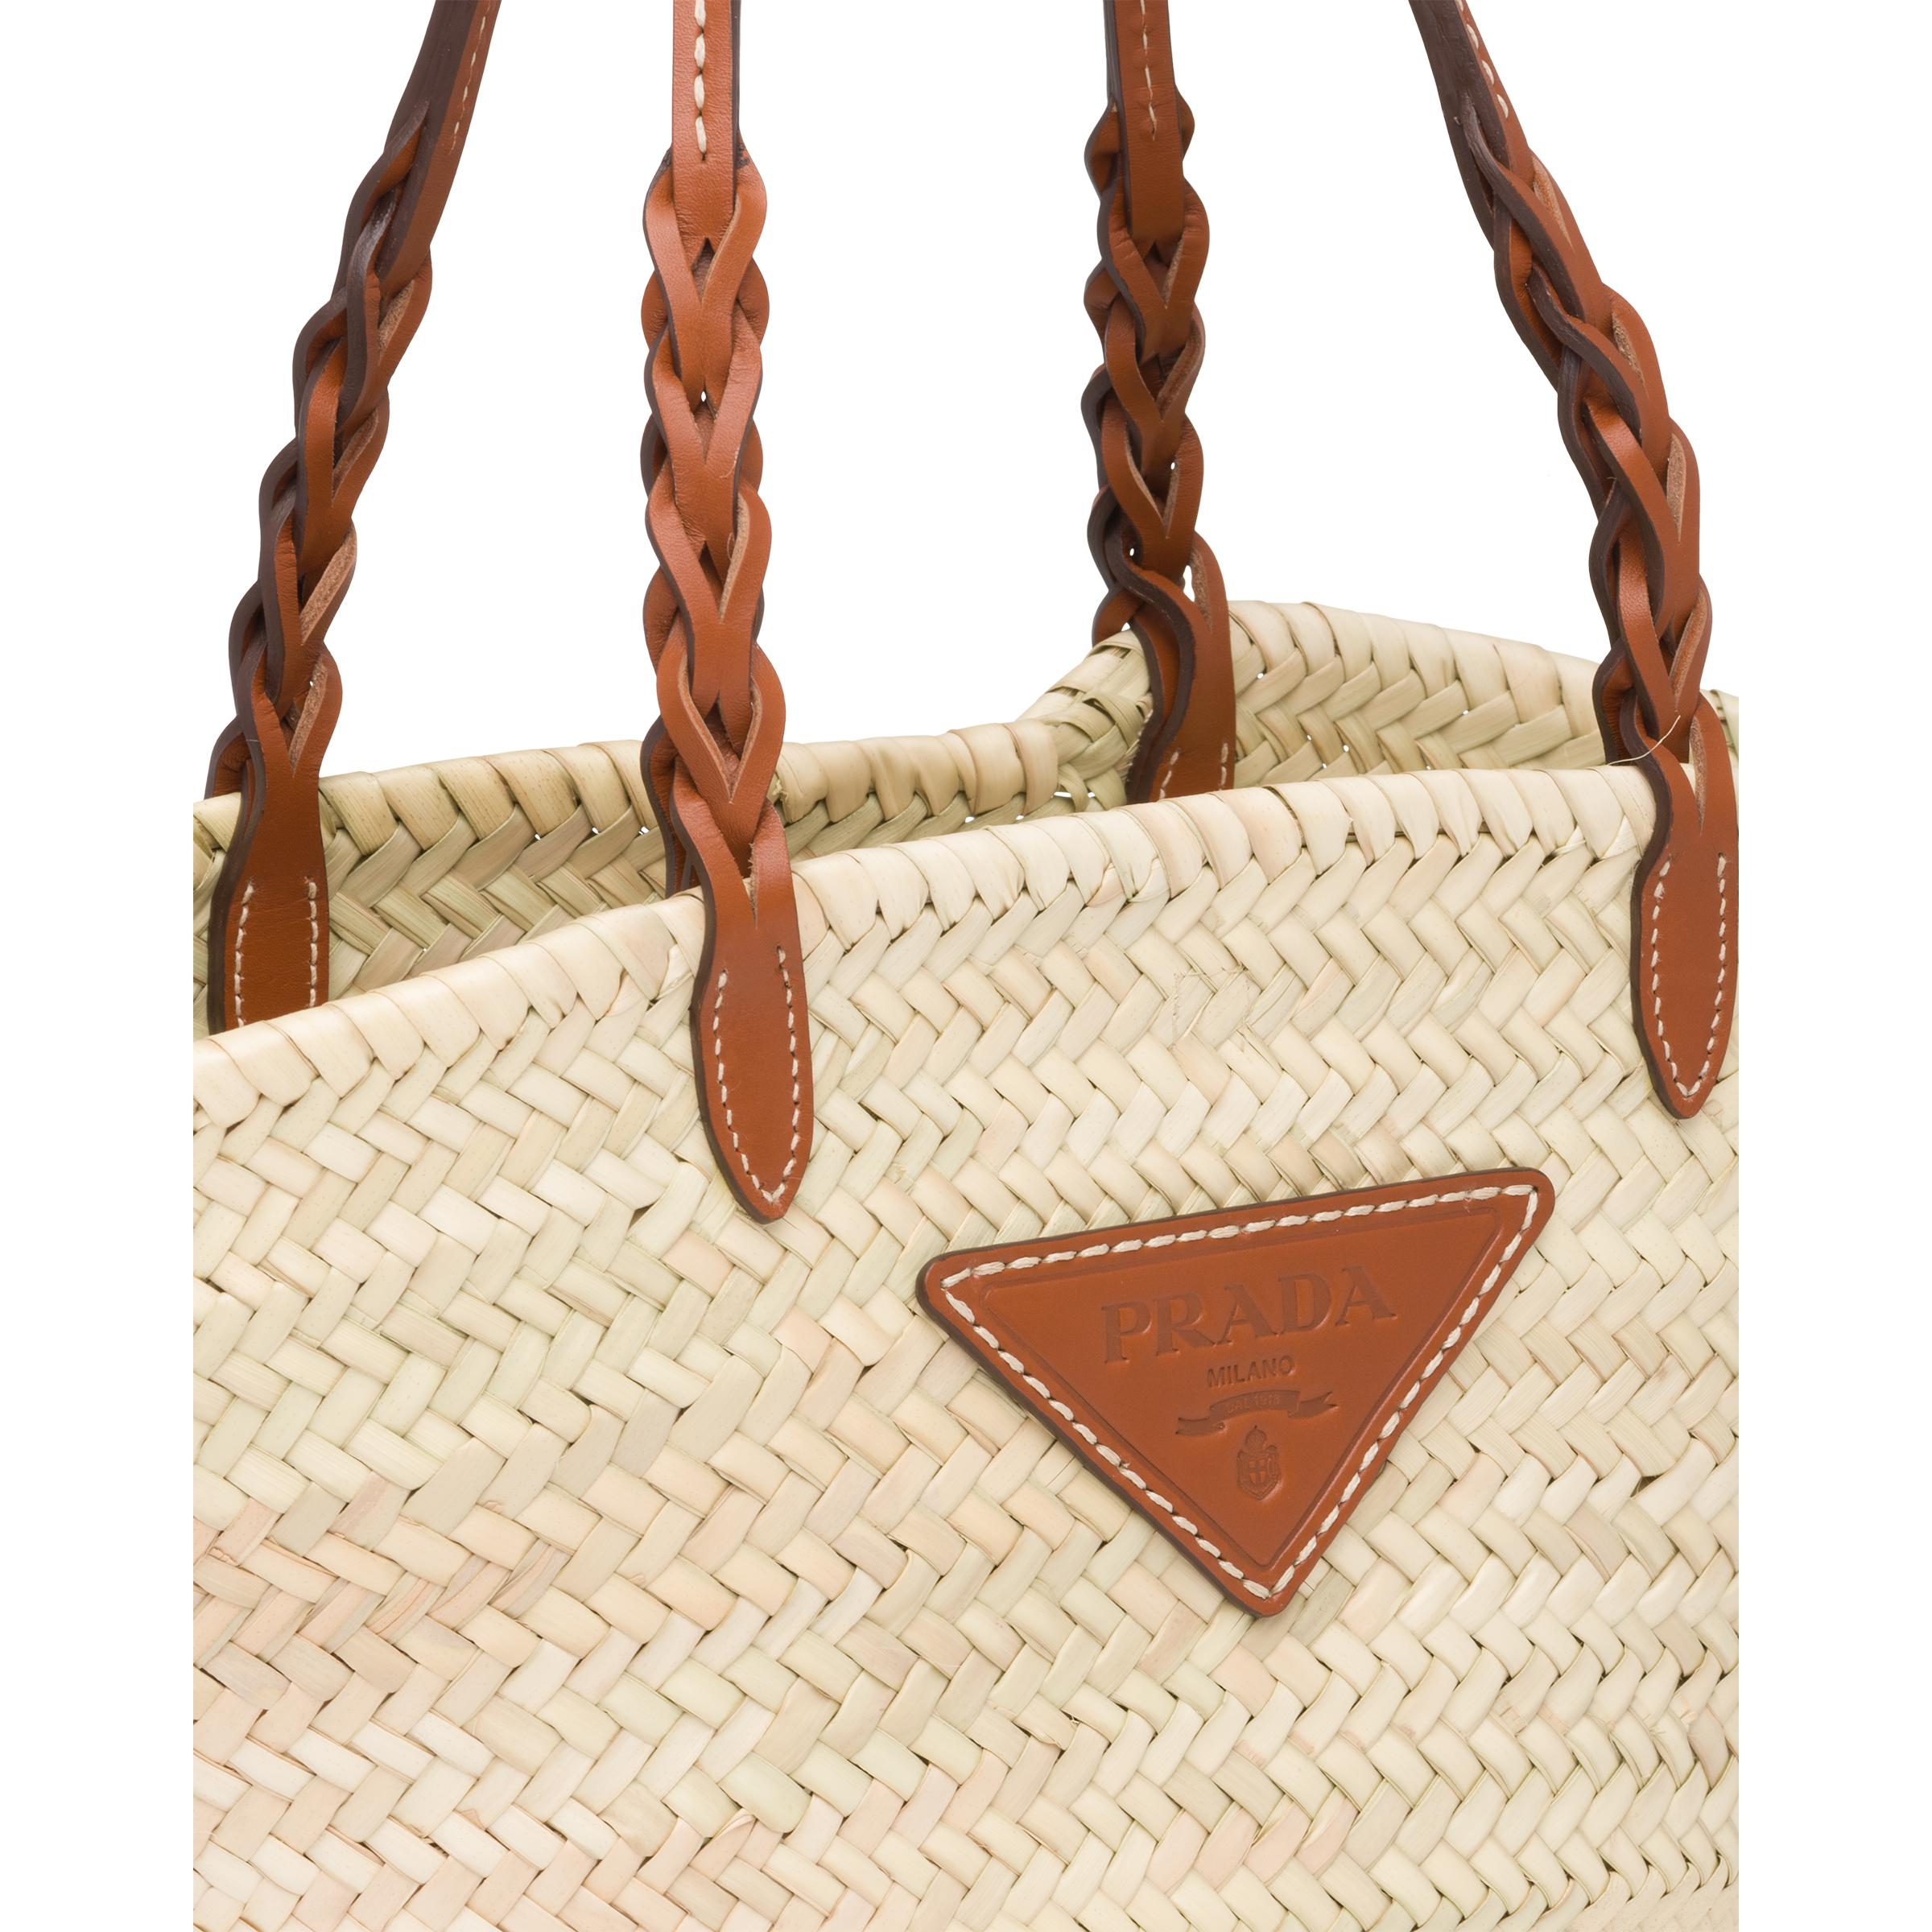 Woven Palm And Leather Tote Women Beige/cognac 5